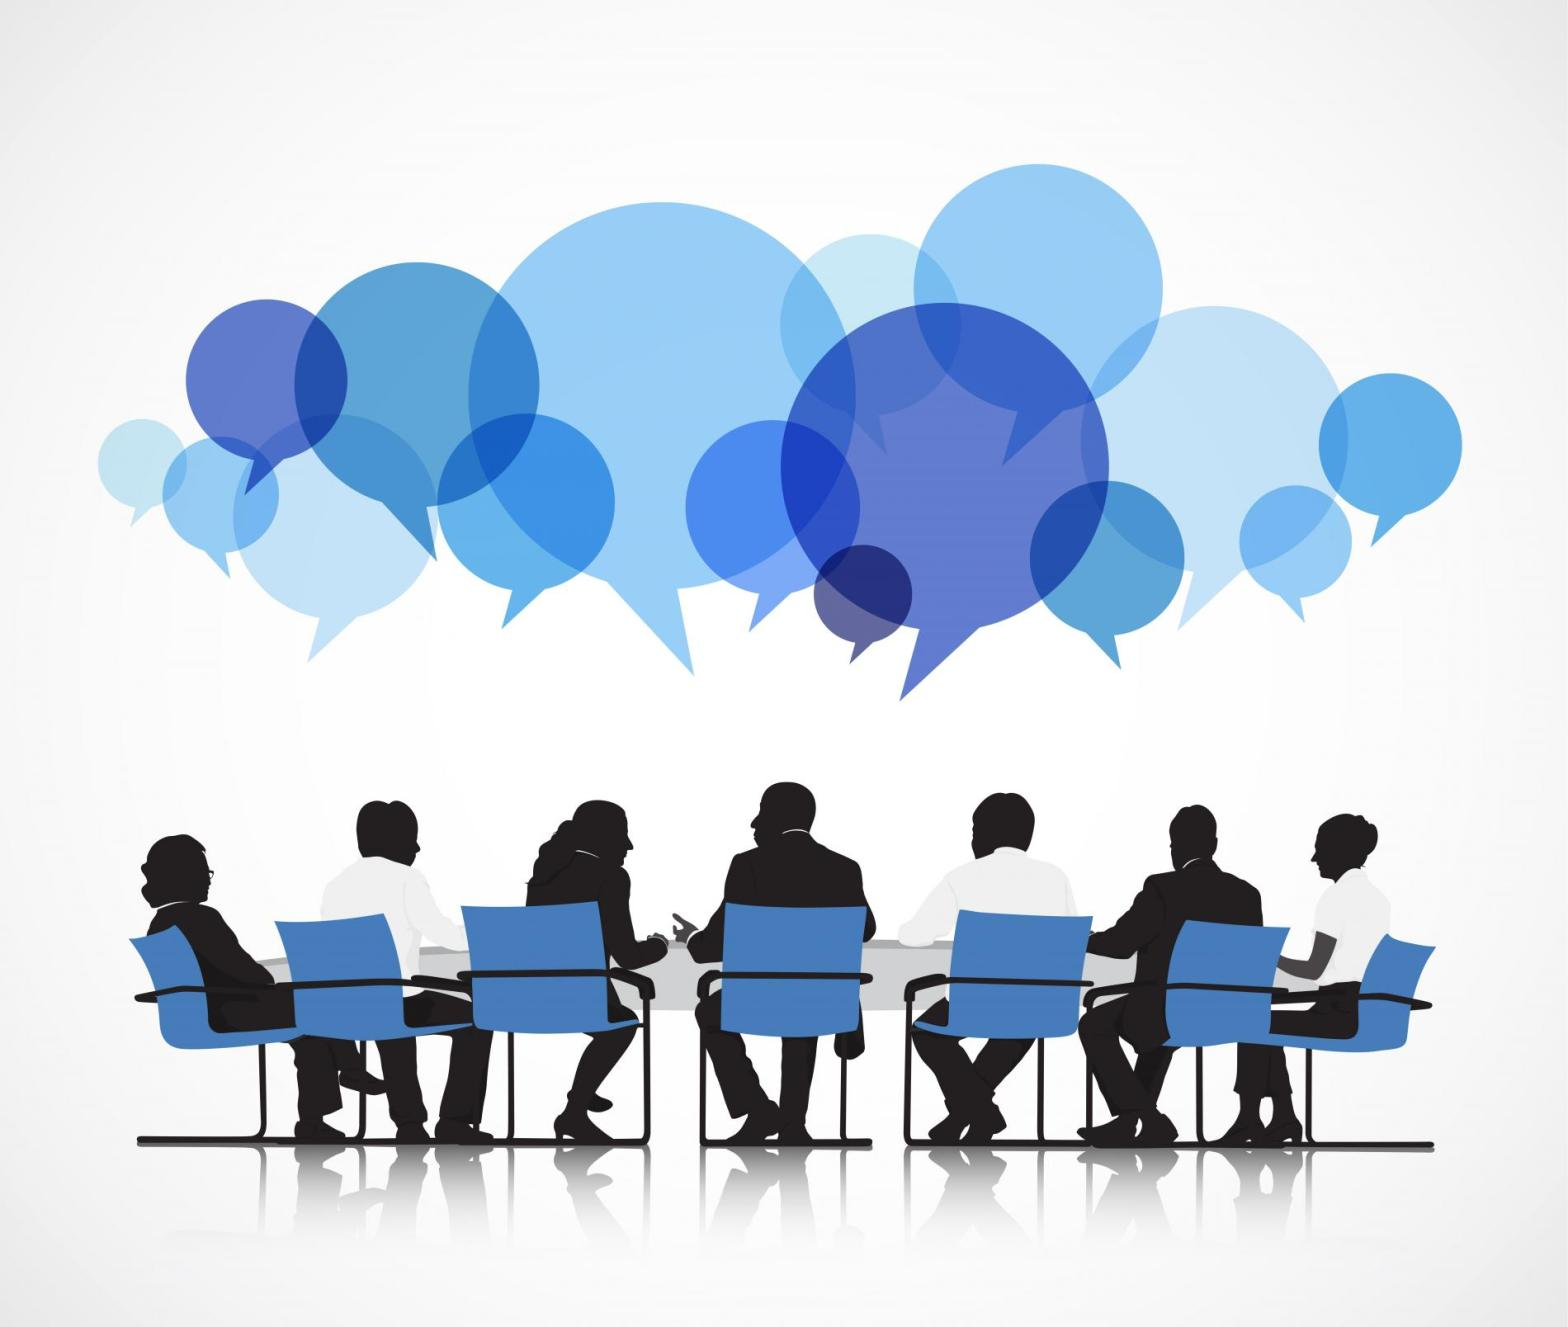 5 Tips for More Effective Team Meetings